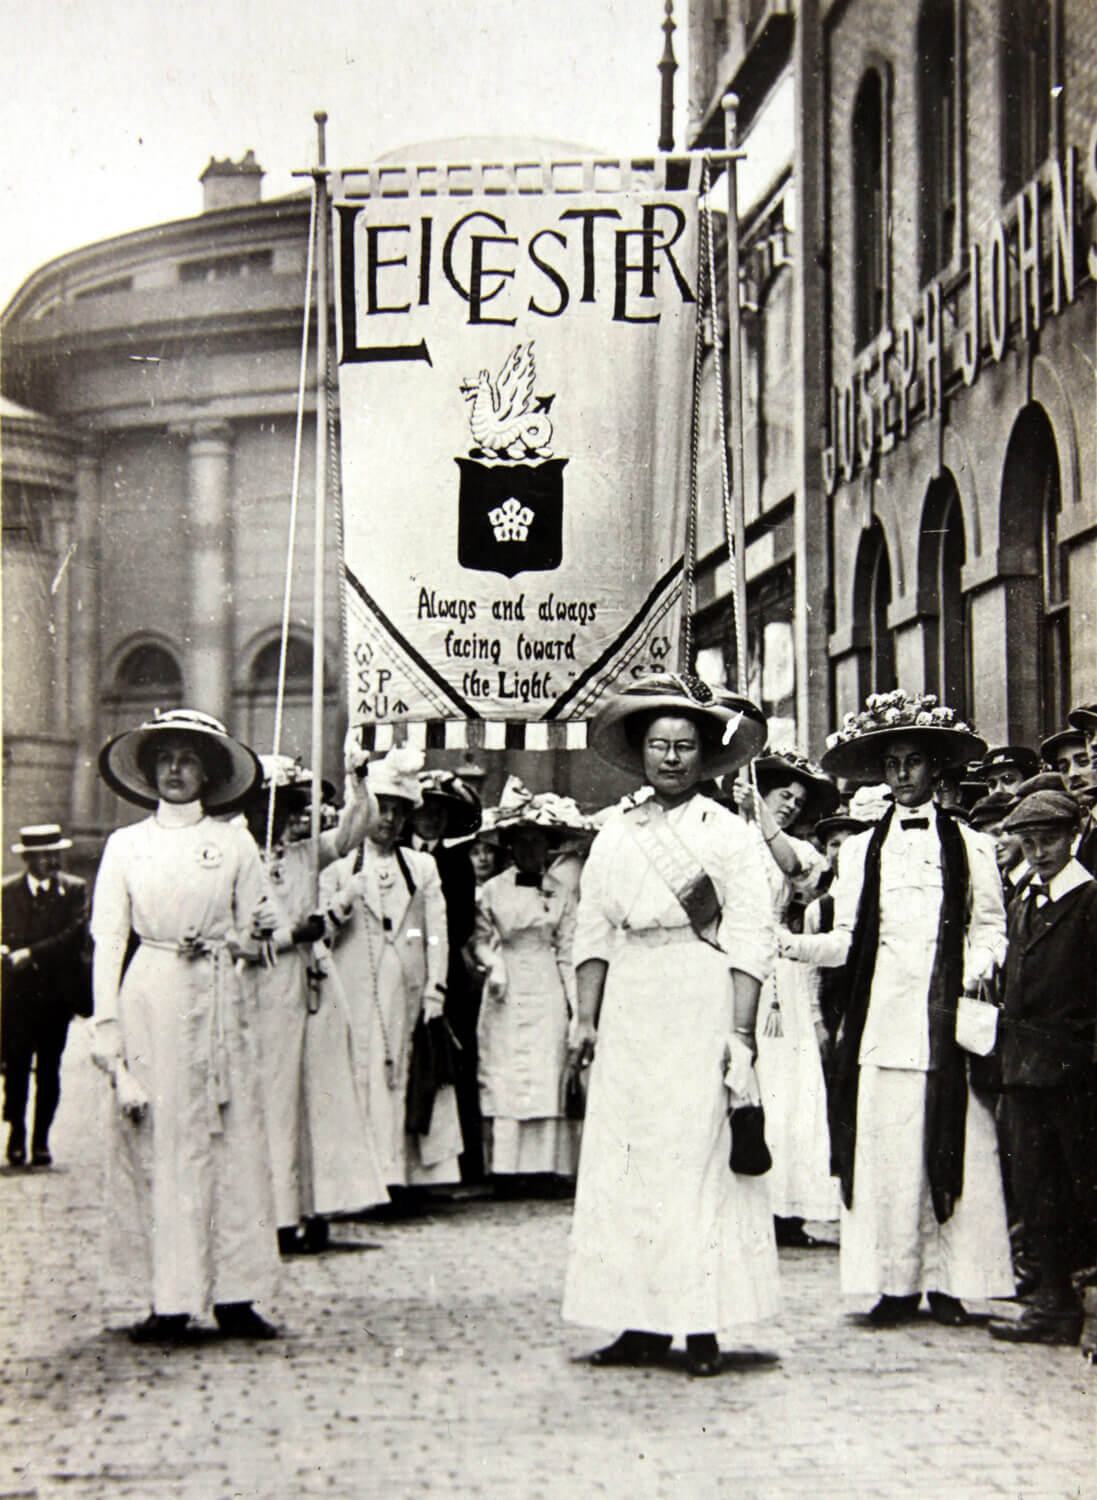 Leicester Suffragettes. Demonstration in Bowling Green Street May 1911 - Leicestershire Record Office